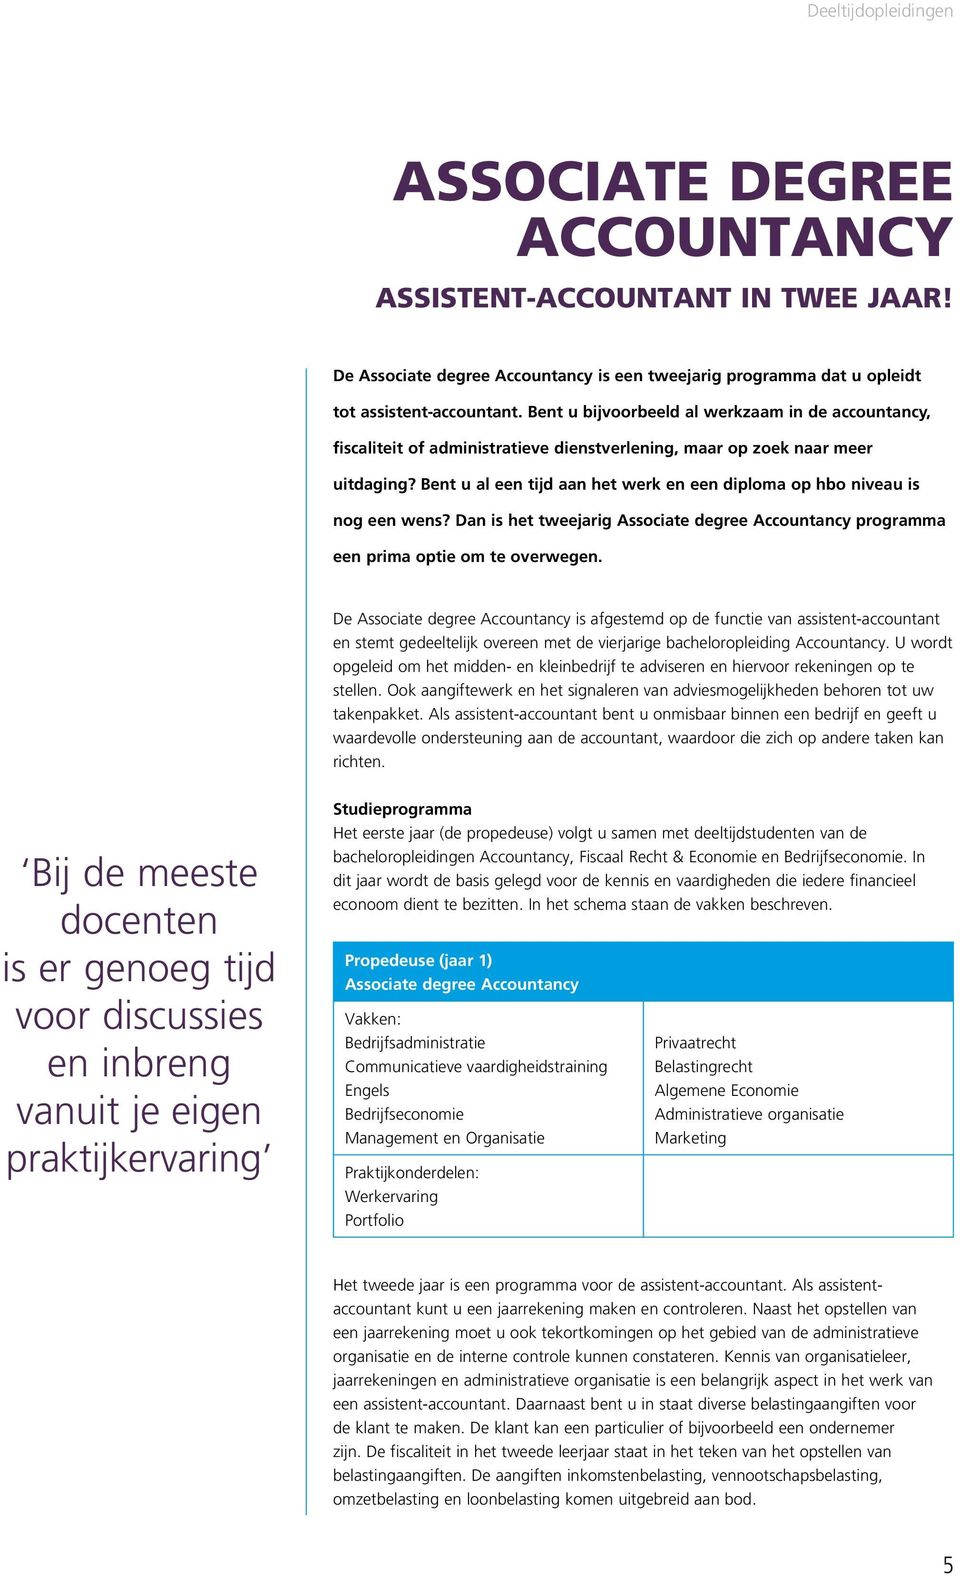 Bent u al een tijd aan het werk en een diploma op hbo niveau is nog een wens? Dan is het tweejarig Associate degree Accountancy programma een prima optie om te overwegen.